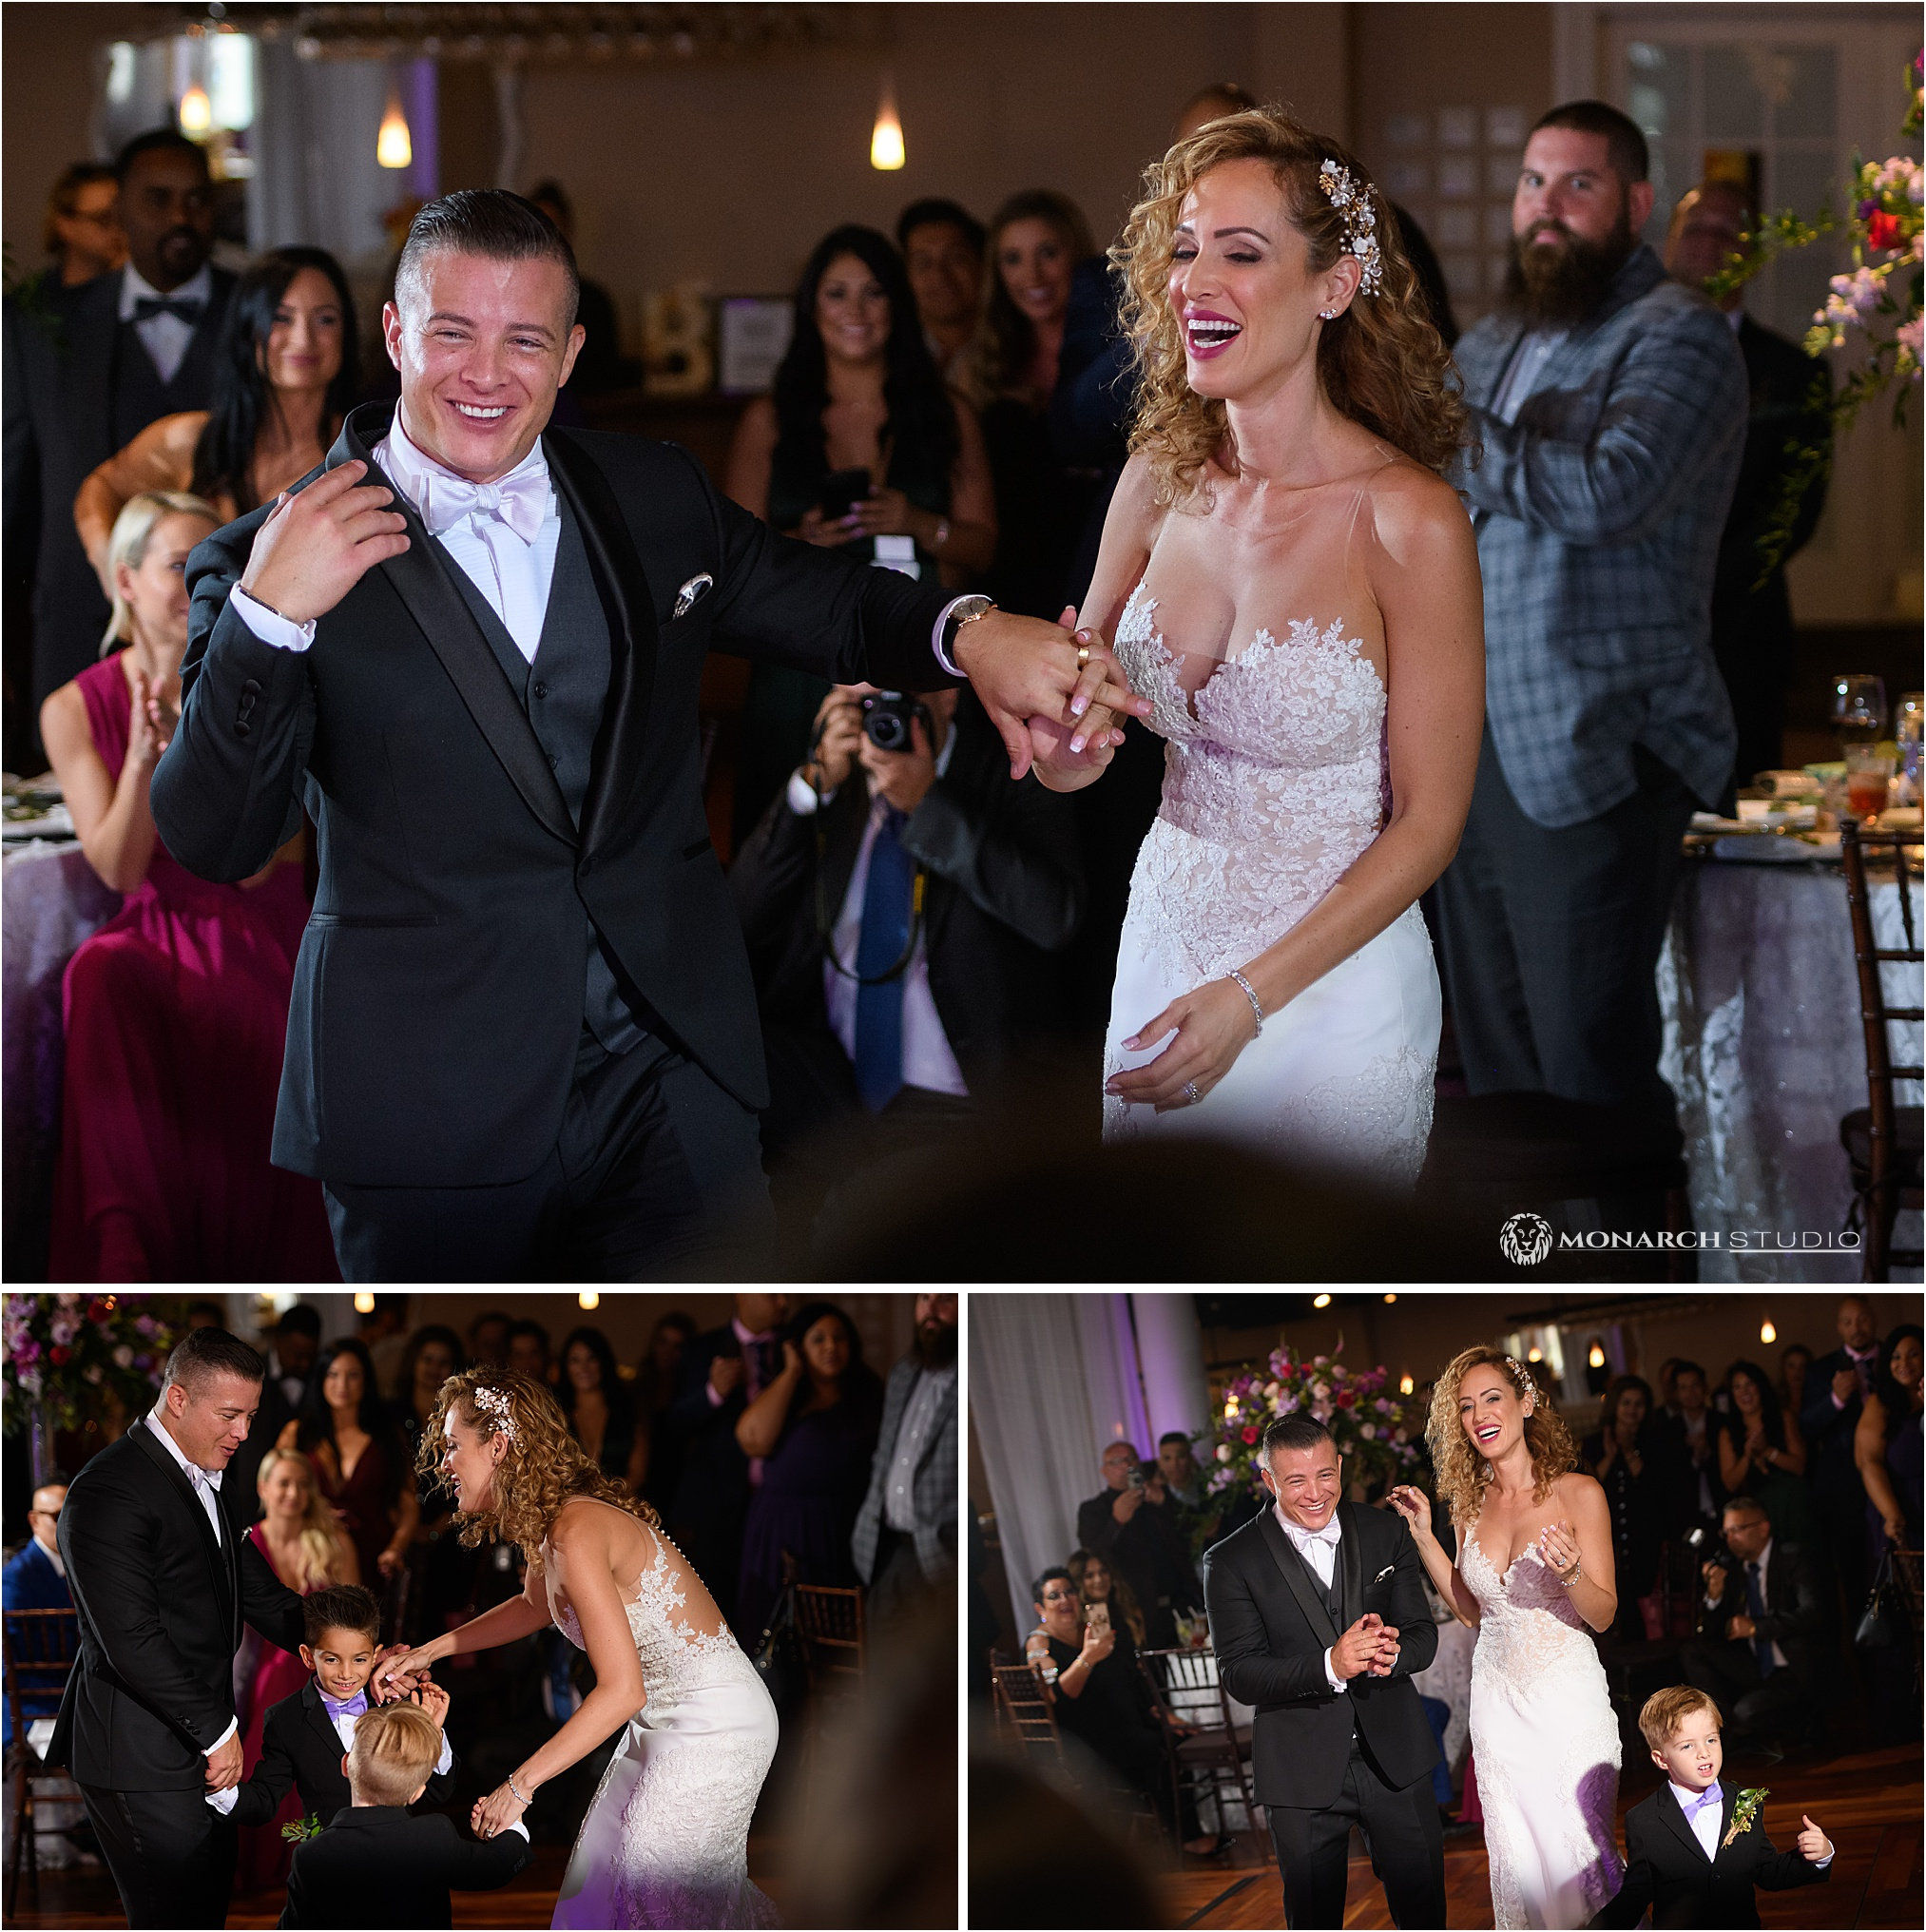 The-Whiteroom-Wedding-Photography-Saint-Augustine-Florida (128).jpg